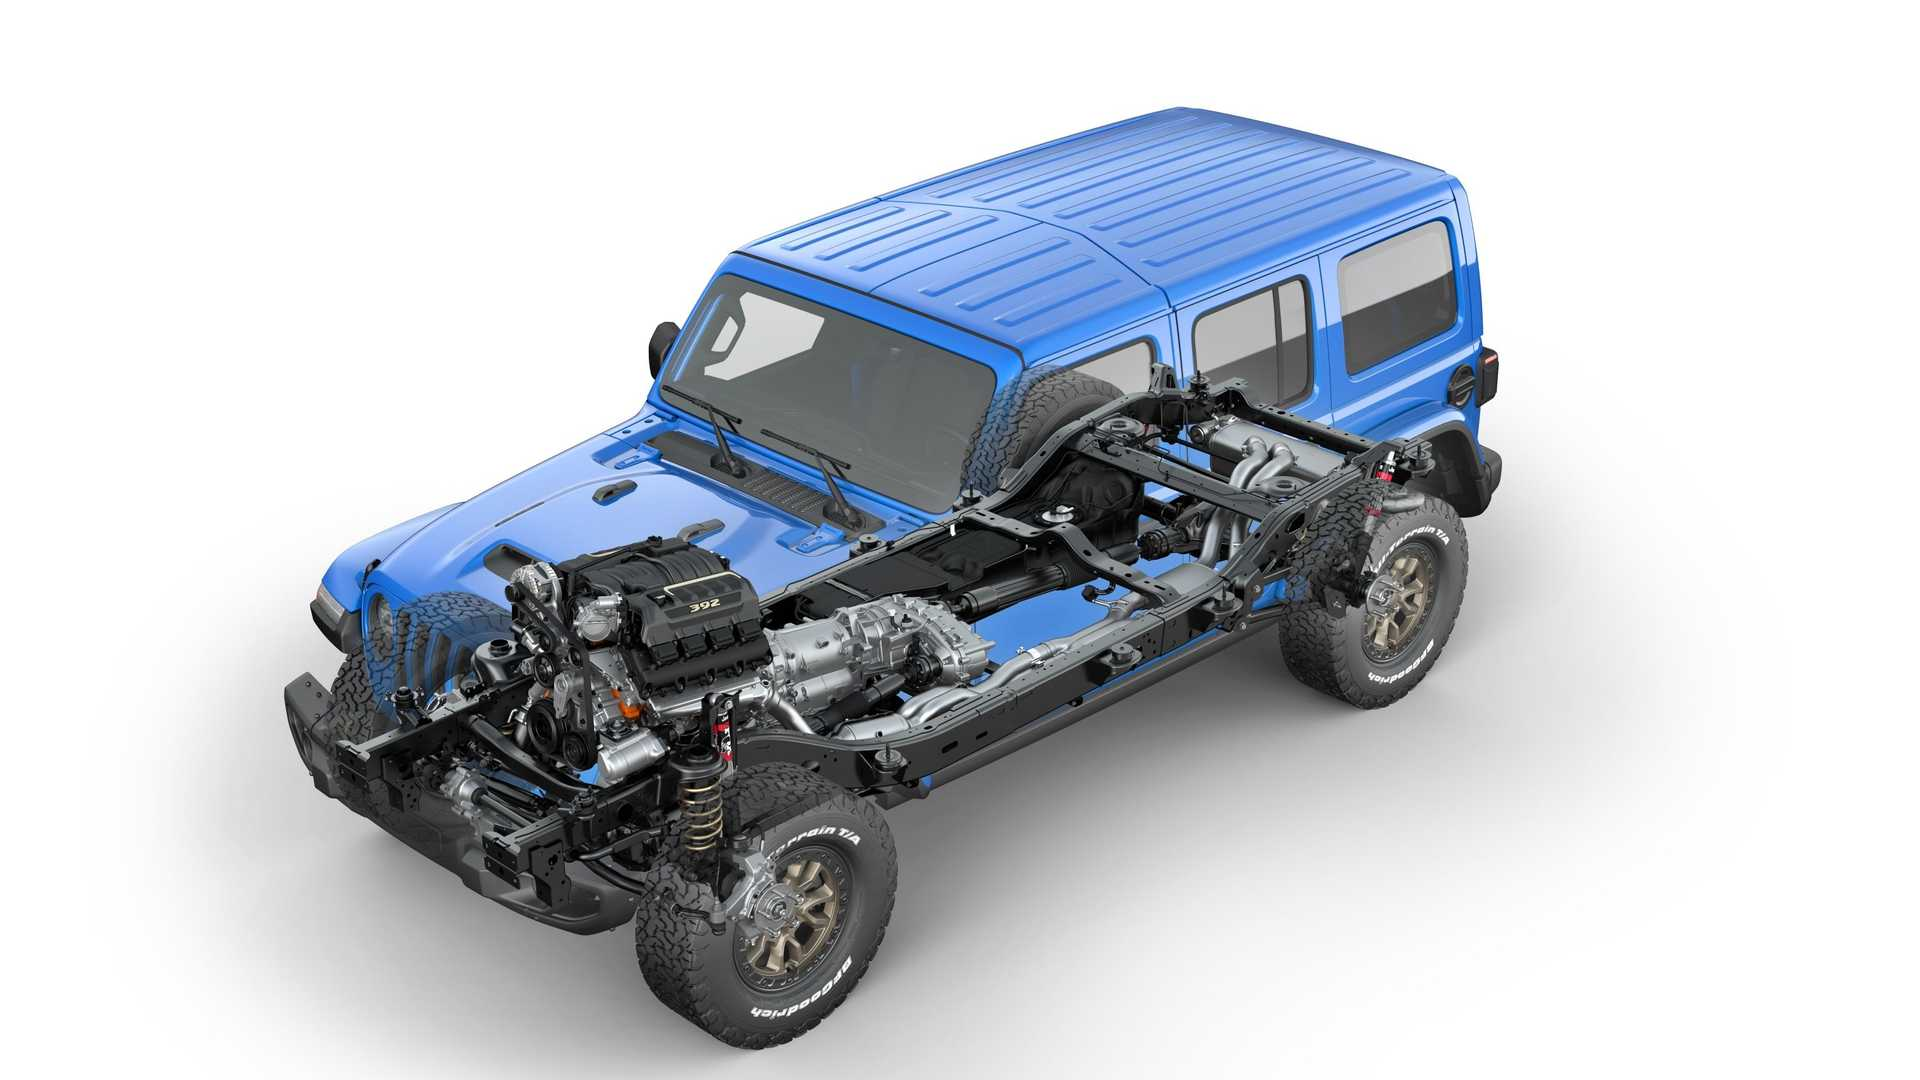 2021-jeep-wrangler-rubicon-392-powertrain-cutaway